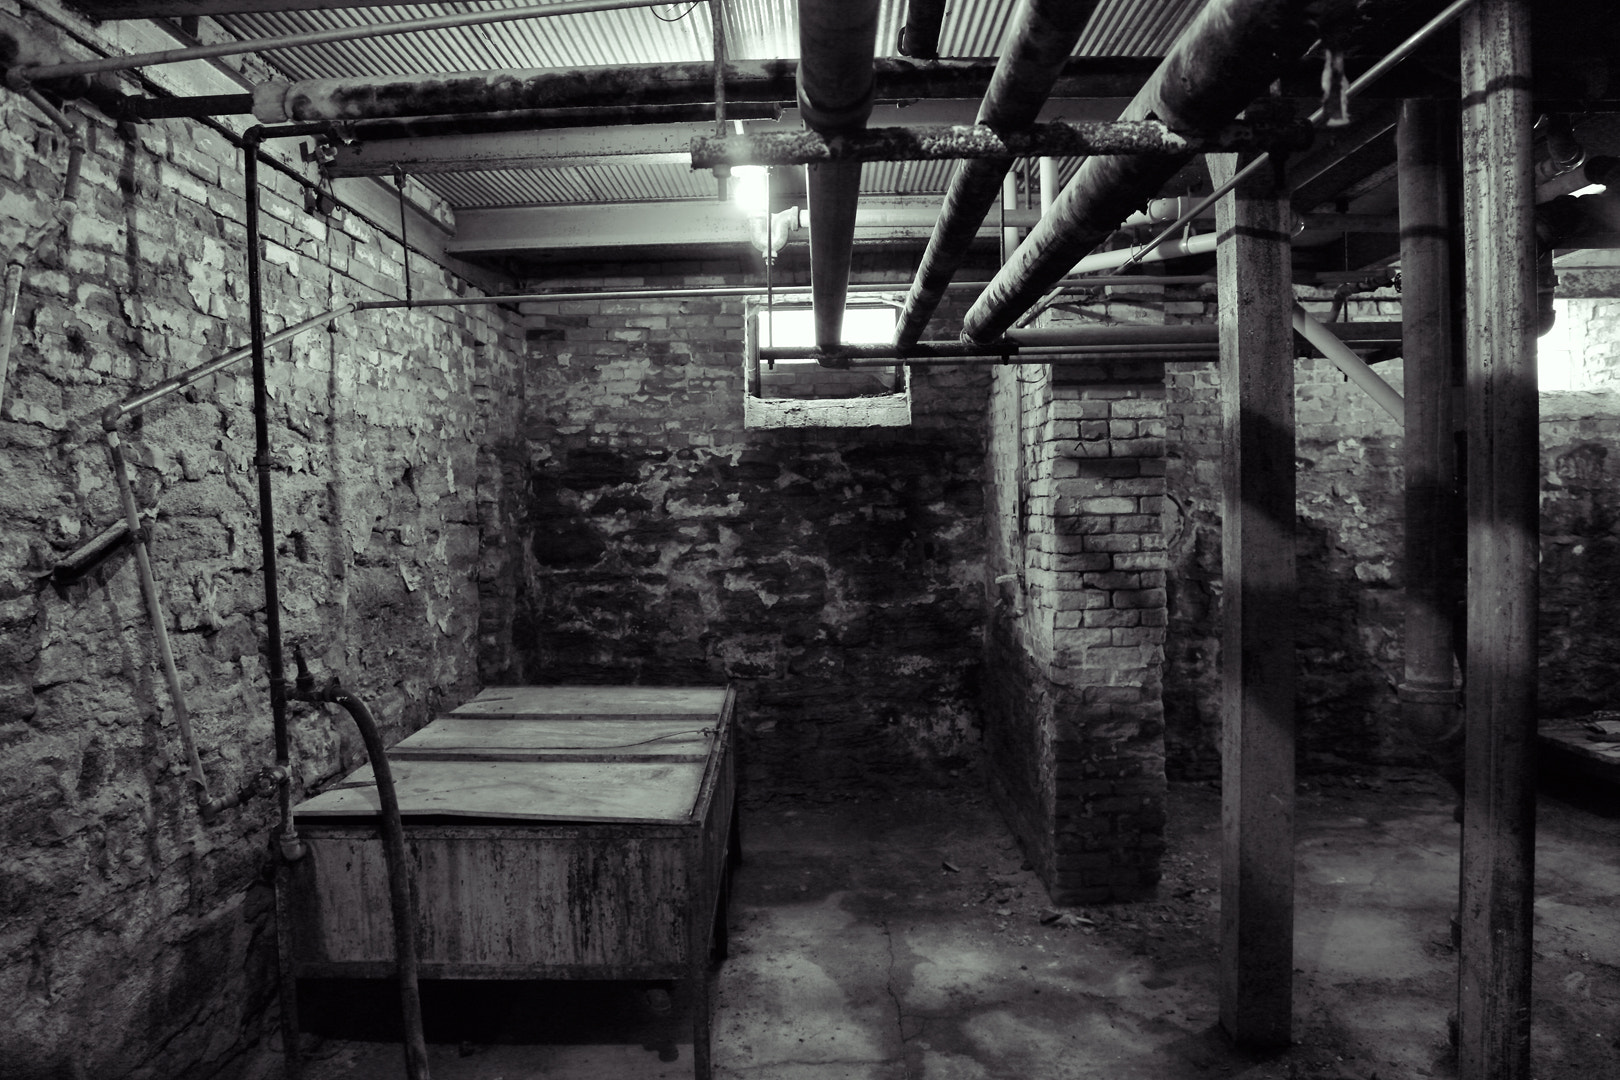 Photograph Morgue by Christian VanAntwerpen on 500px